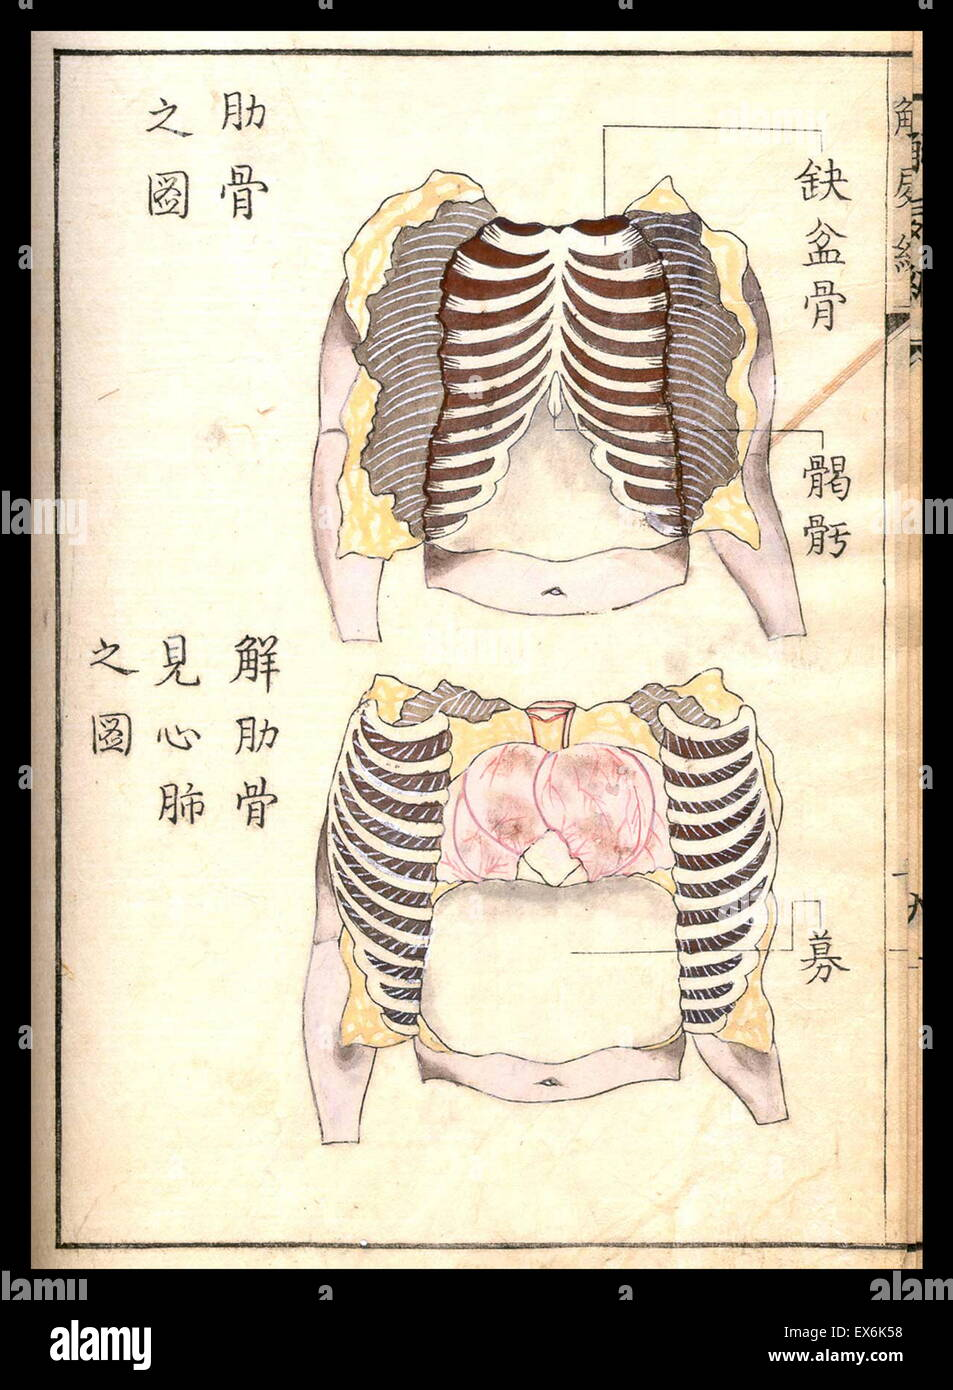 Illustration from a Japanese anatomical and medical text \'Complete ...